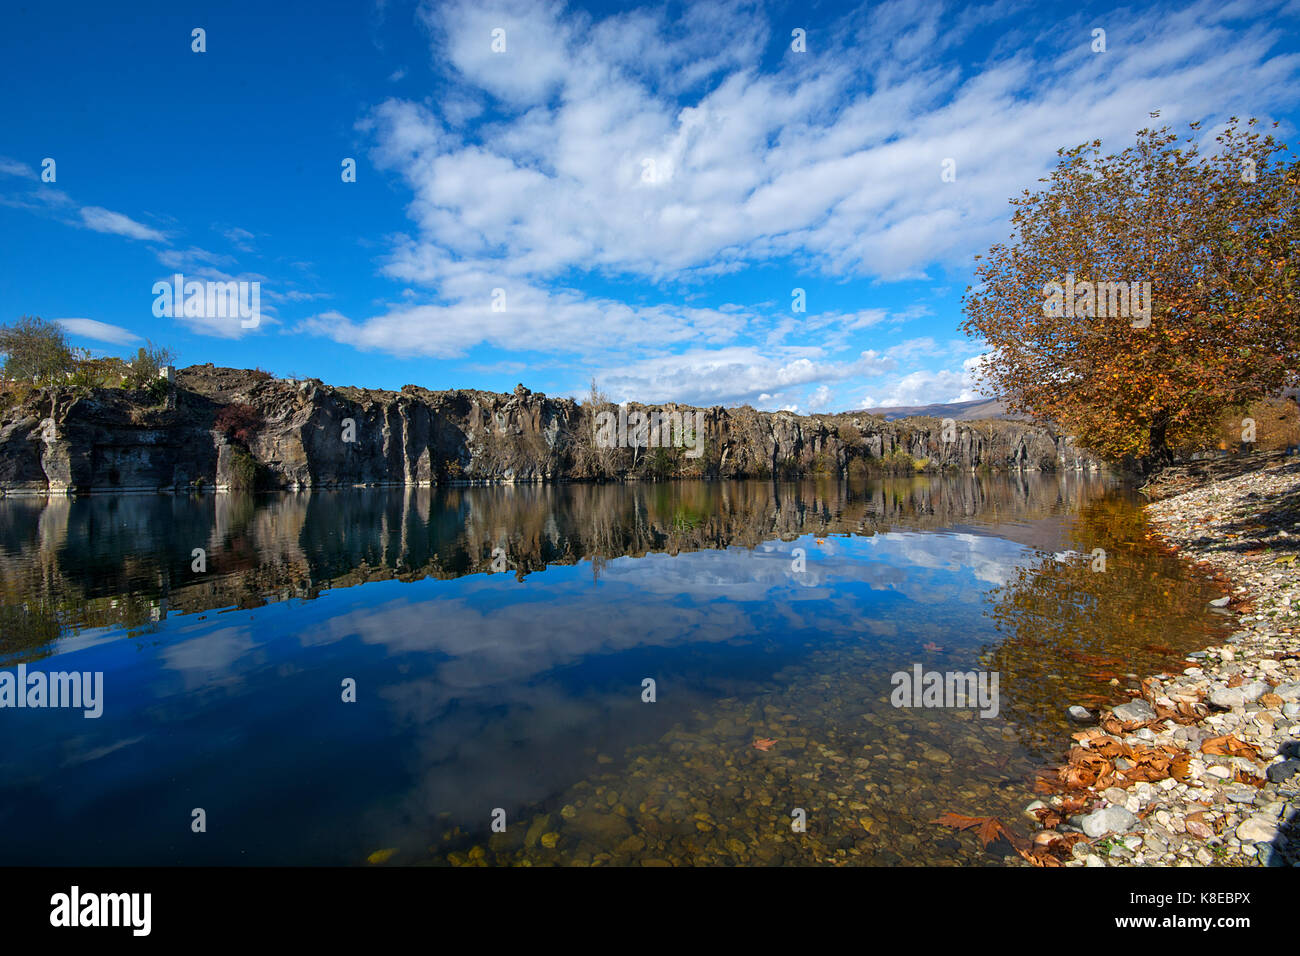 reflections in the Adala canyon - Stock Image